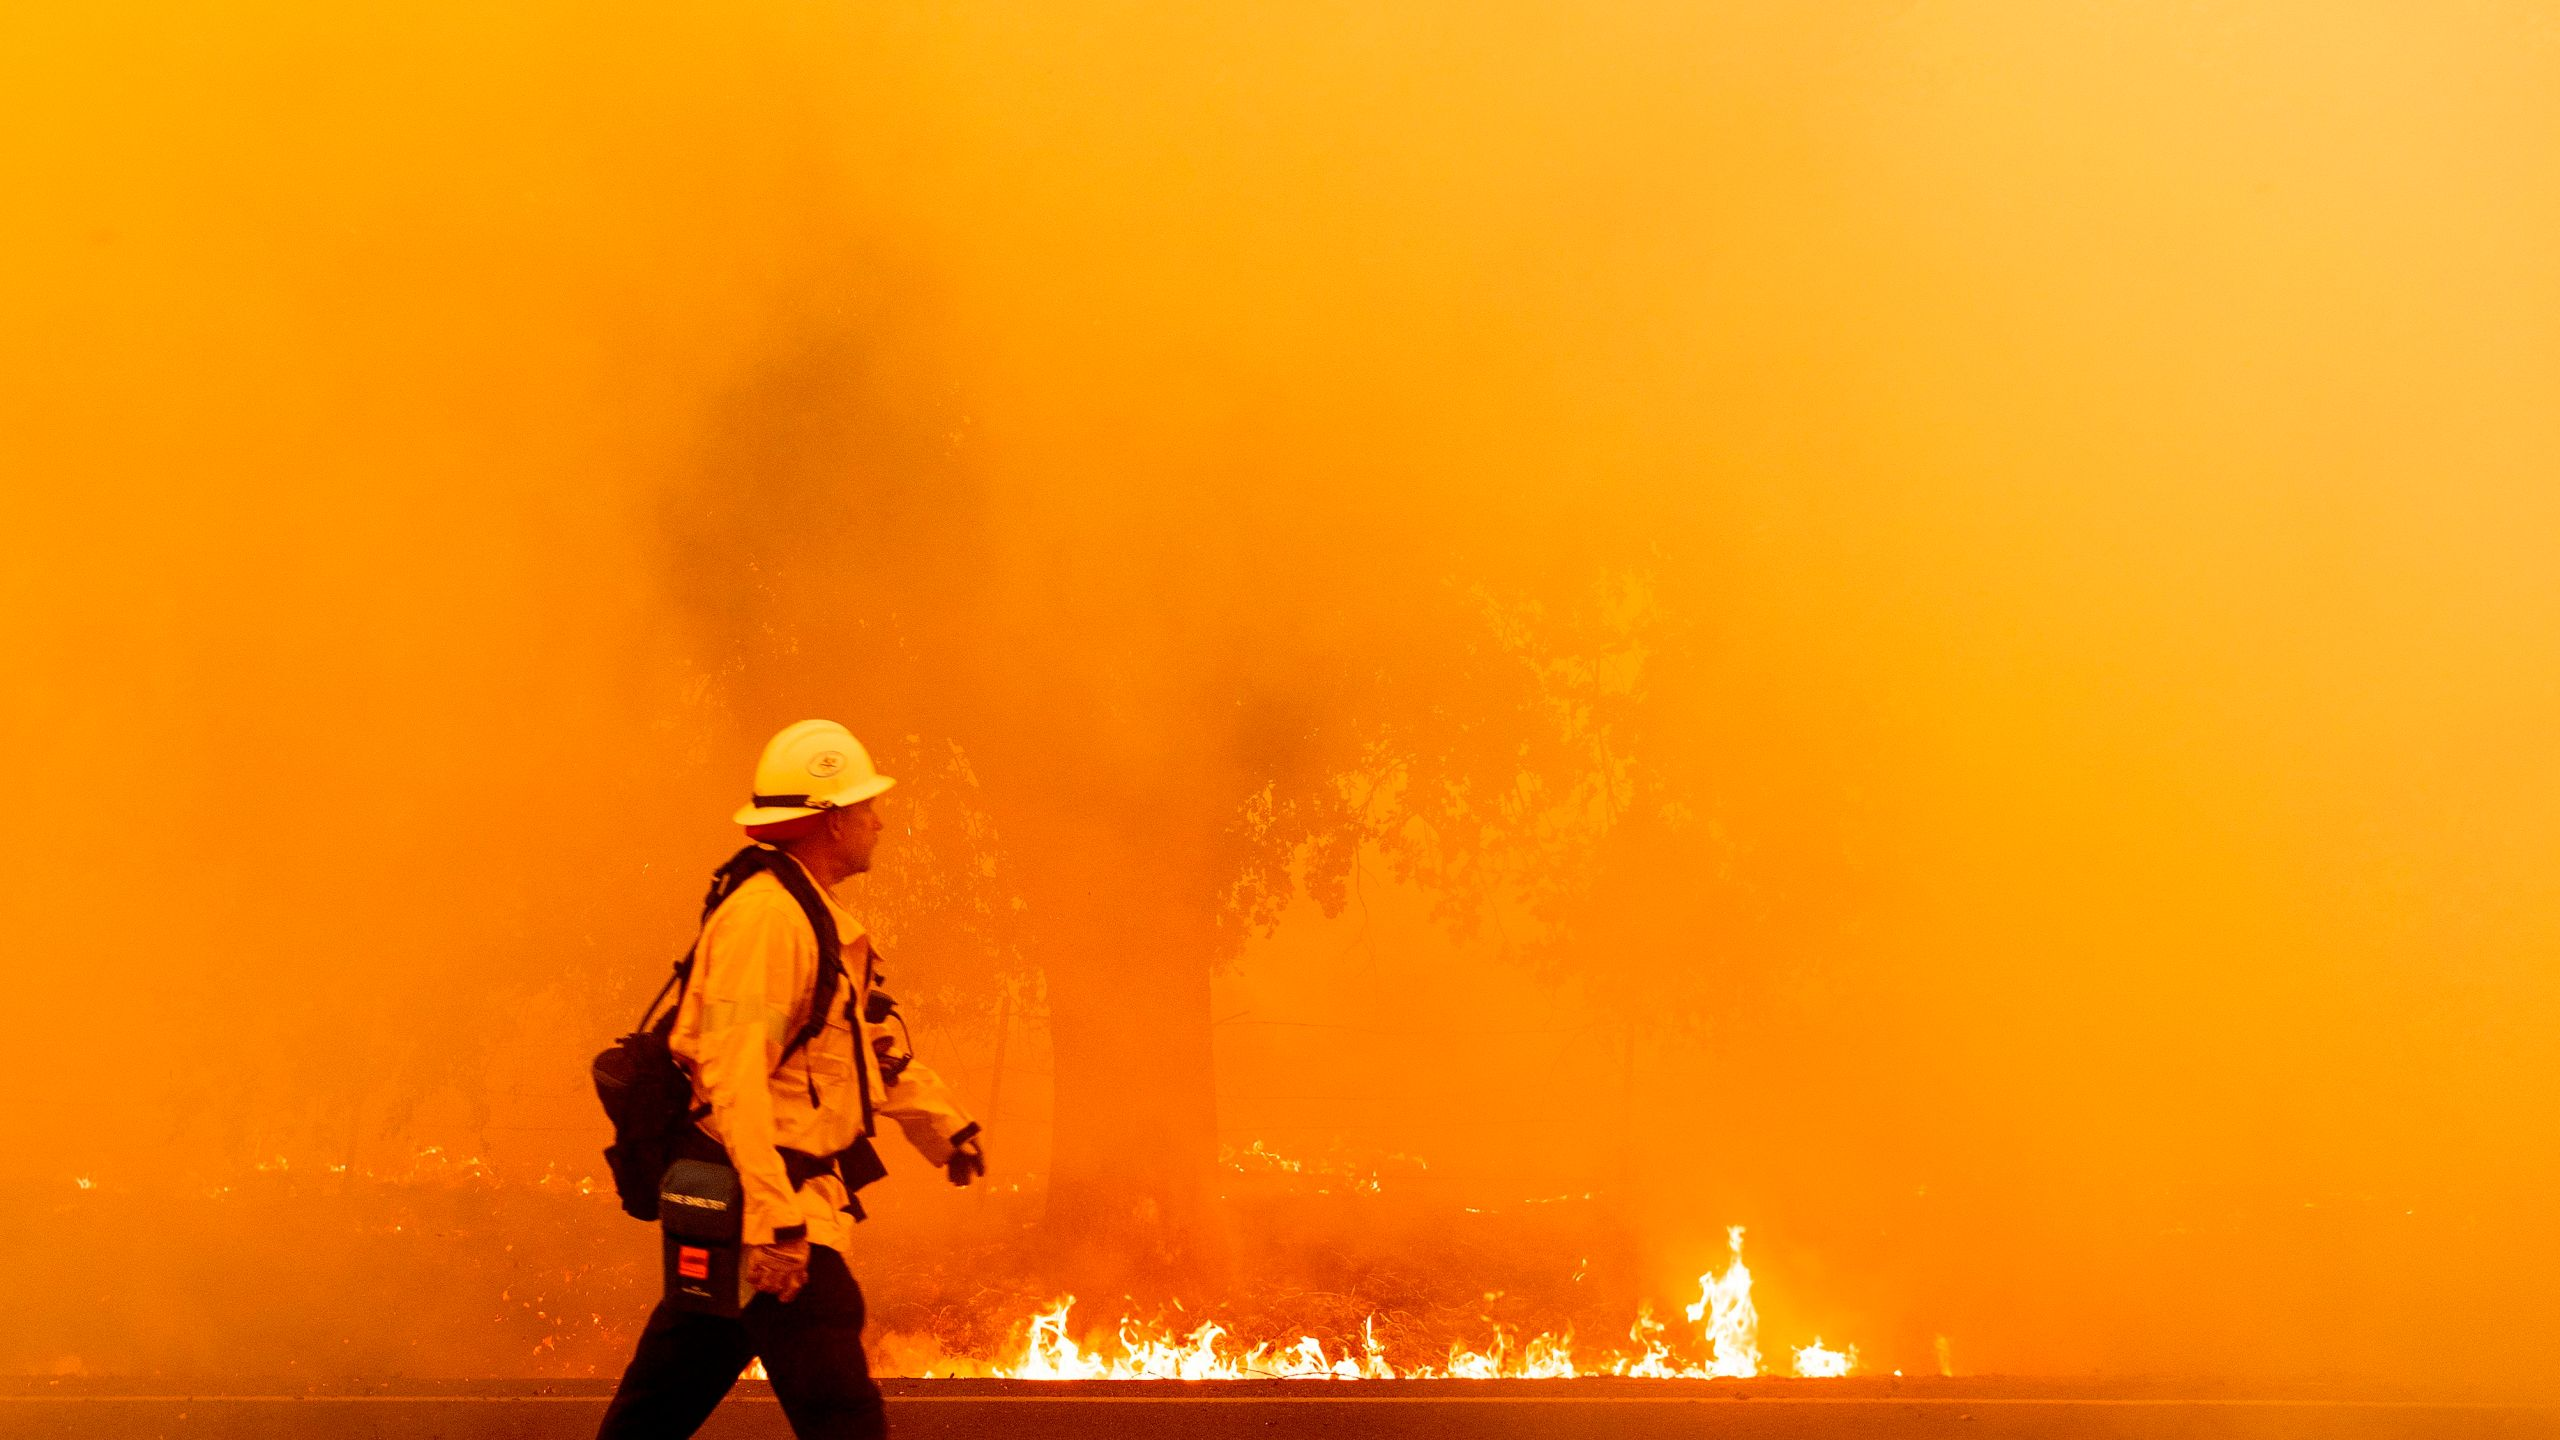 A Pacific Gas and Electric firefighter walks down a road as flames approach in Fairfield, Calif. during the LNU Lightning Complex fire on Aug. 19, 2020. (JOSH EDELSON/AFP via Getty Images)